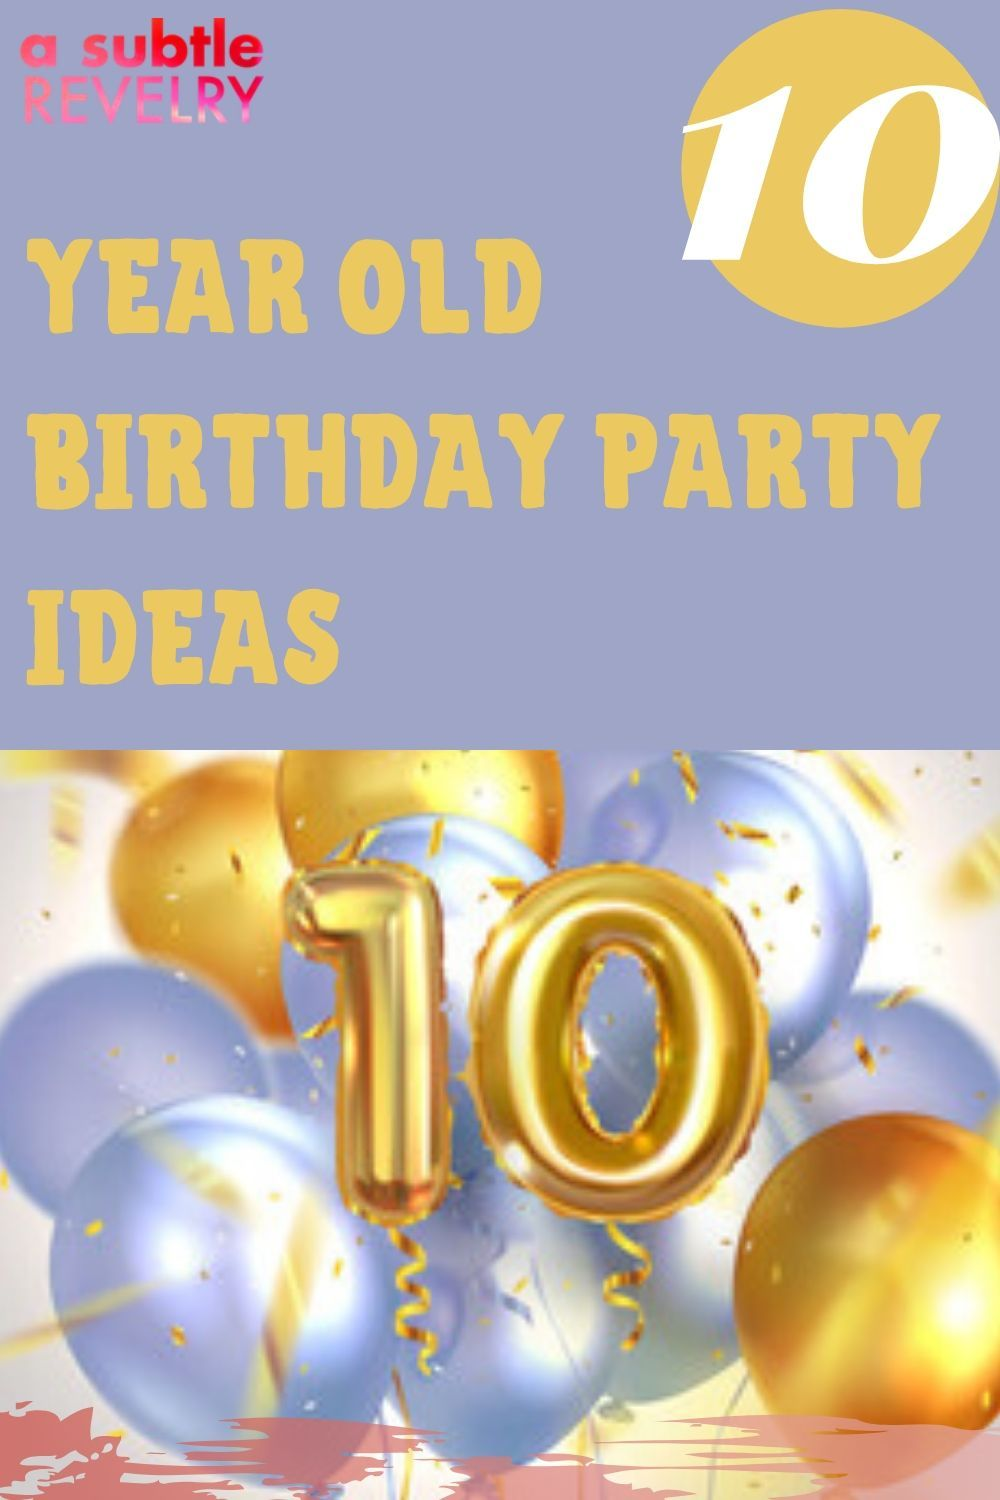 10 Year Old Birthday Party Ideas For Your Kids New Years Eve Birthday Party Girls Birthday Party Themes Boy Birthday Party Themes